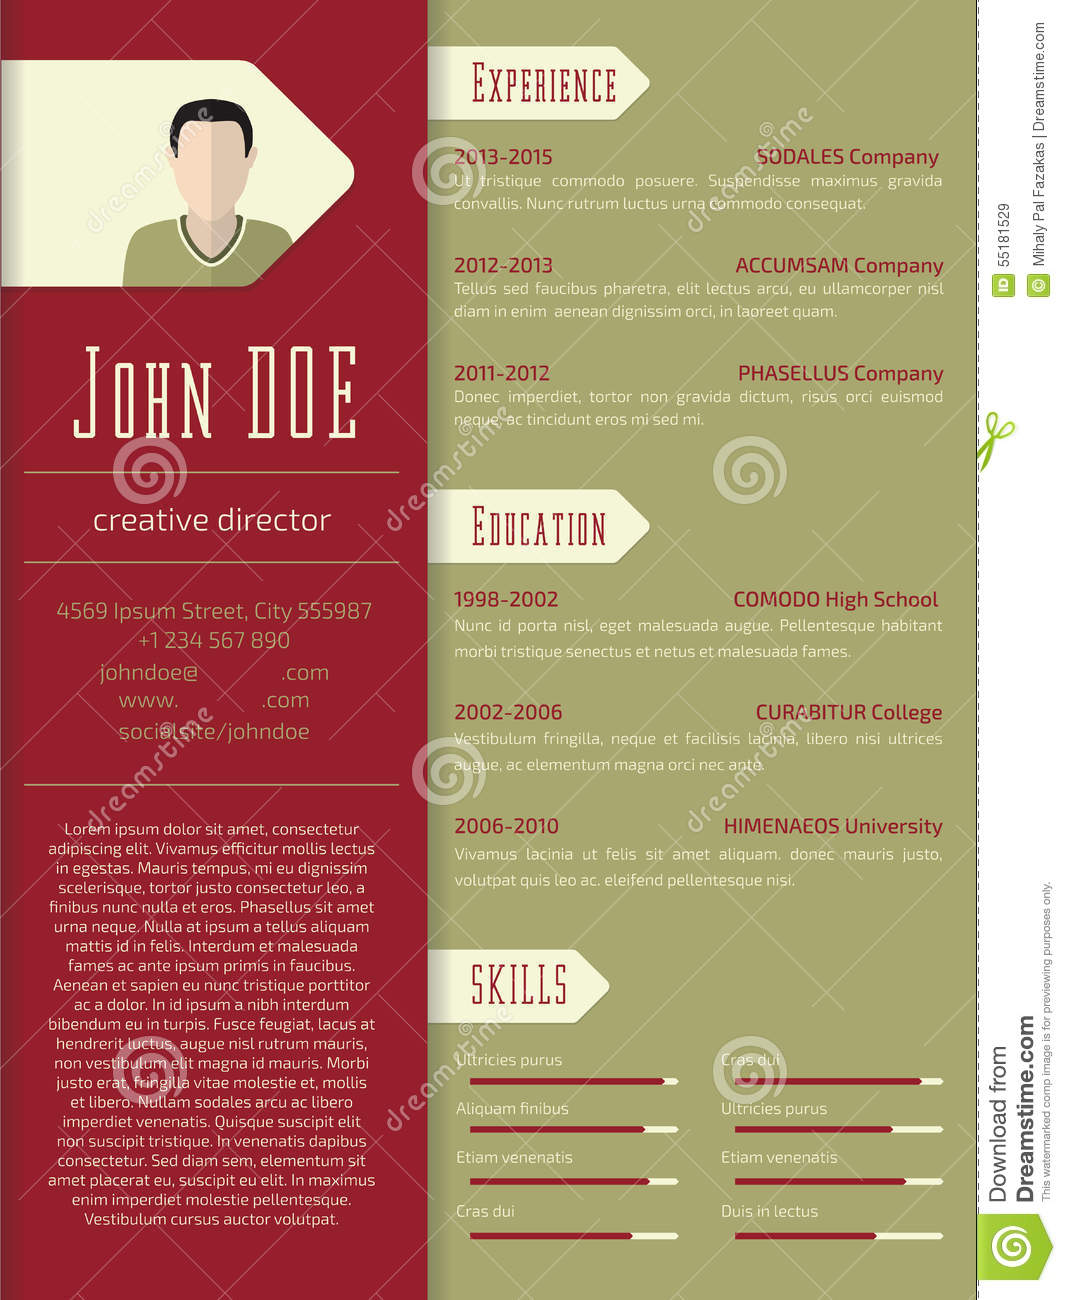 curriculum vitae sample for designer resume templates curriculum vitae sample for designer key account manager kam curriculum vitae resume example 1000 images about